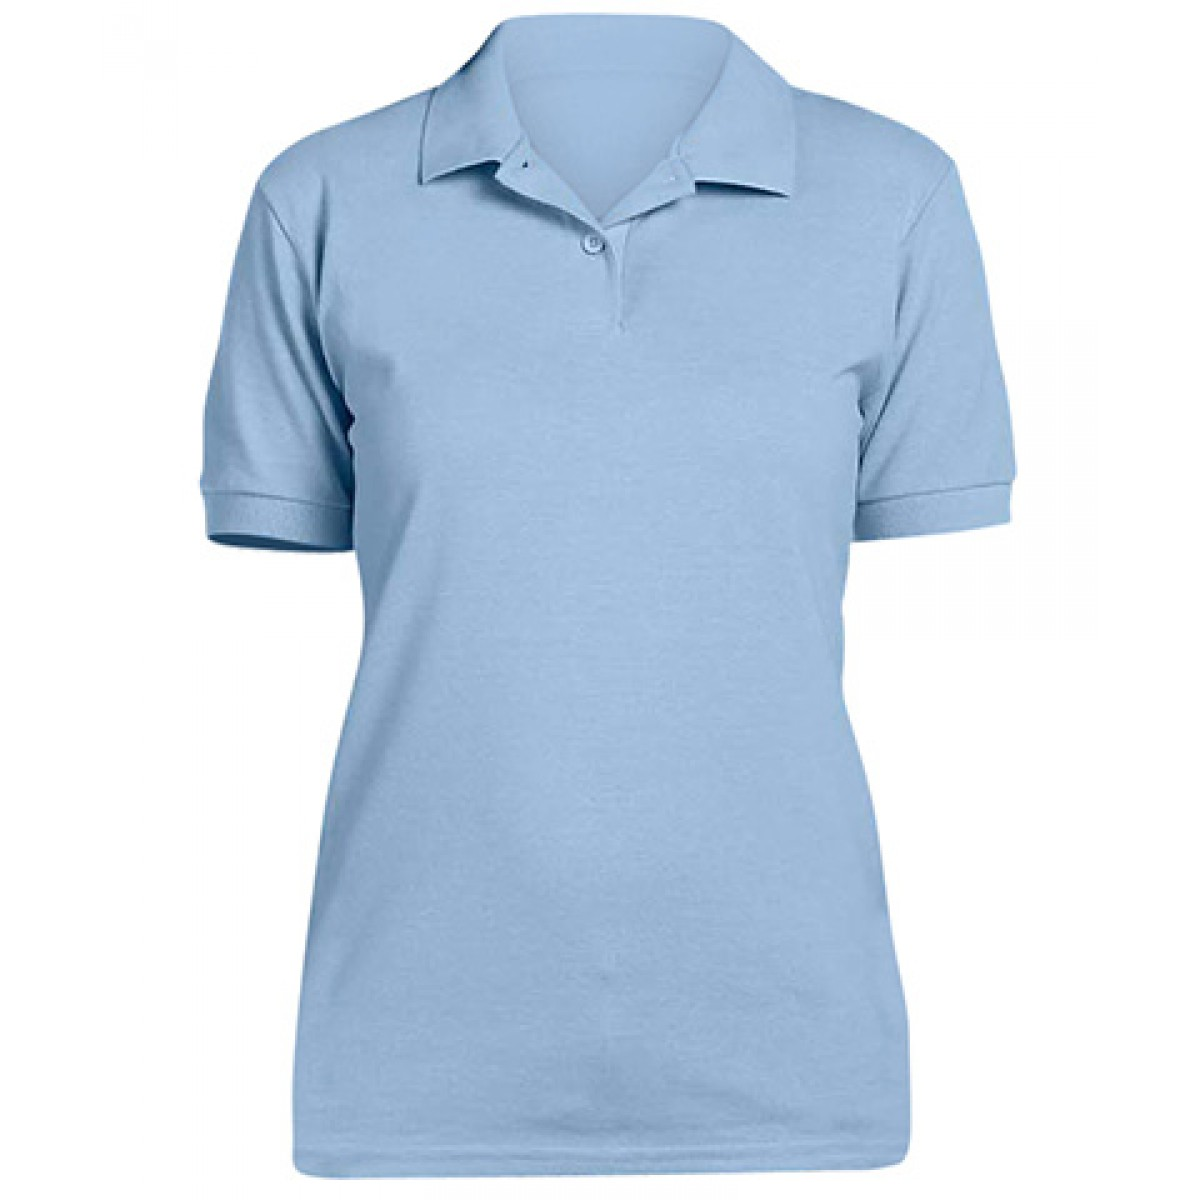 Ladies' 6.5 oz. Piqué Sport Shirt-Blue-3XL